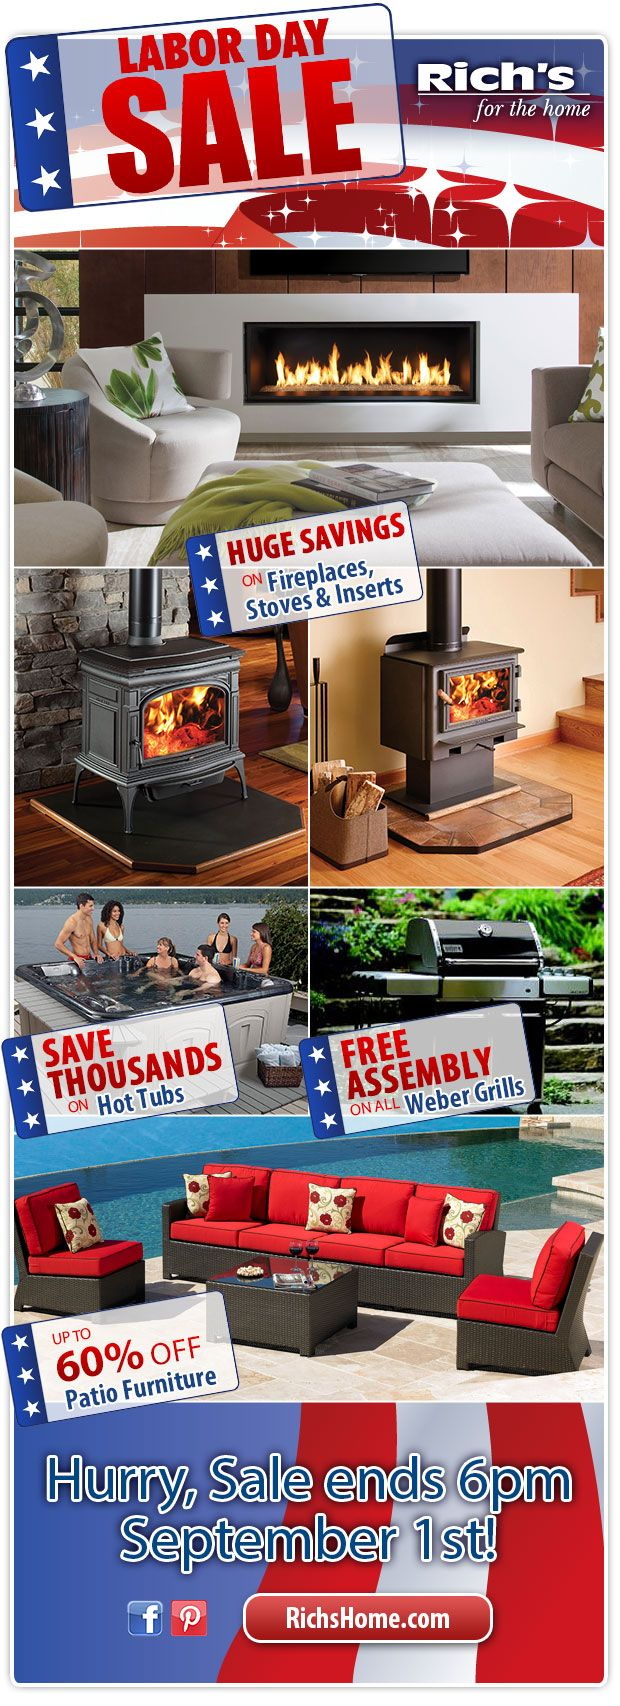 Richu0027s Labor Day Sale: Huge Savings On Fireplaces, Patio Furniture, Hot Tubs